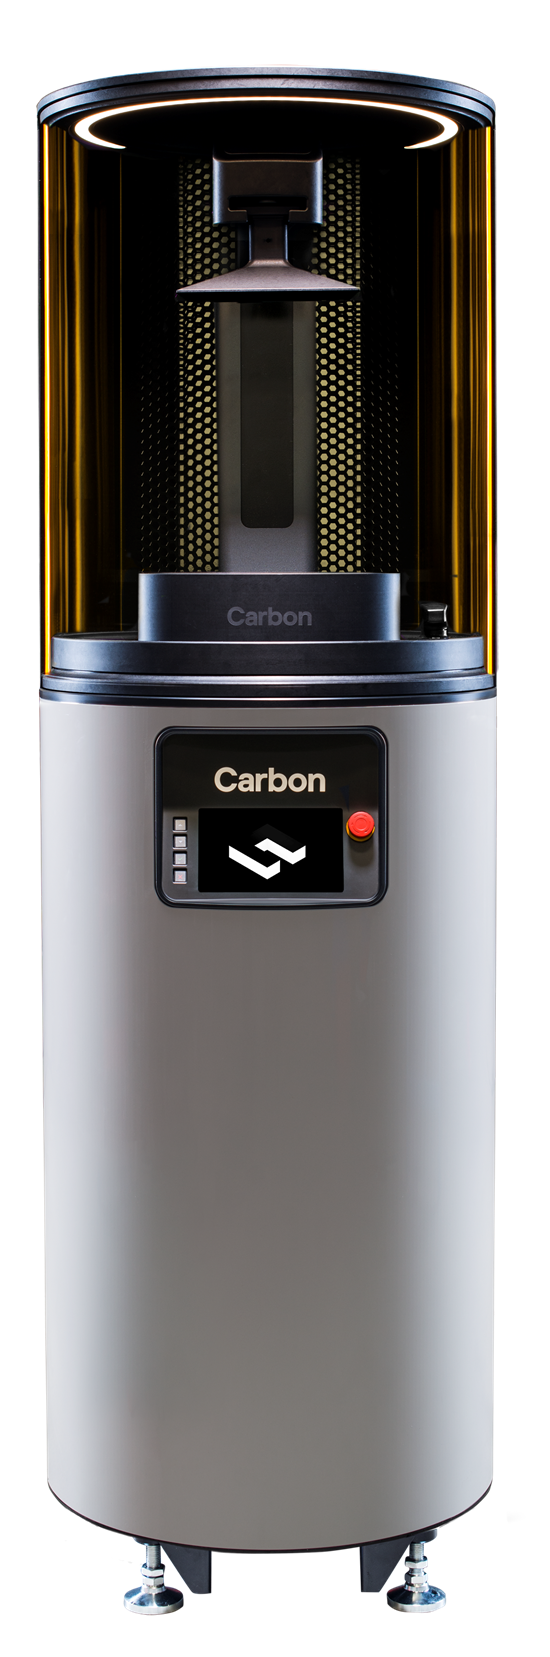 The M2 printer is Carbon's section generation 3D printer. It allows for larger parts, higher throughput and lower part cost. It features a build volume measuring 7.4 in. × 4.6 in. × 12.8 in. and Carbon's Digital Light Synthesis technology.